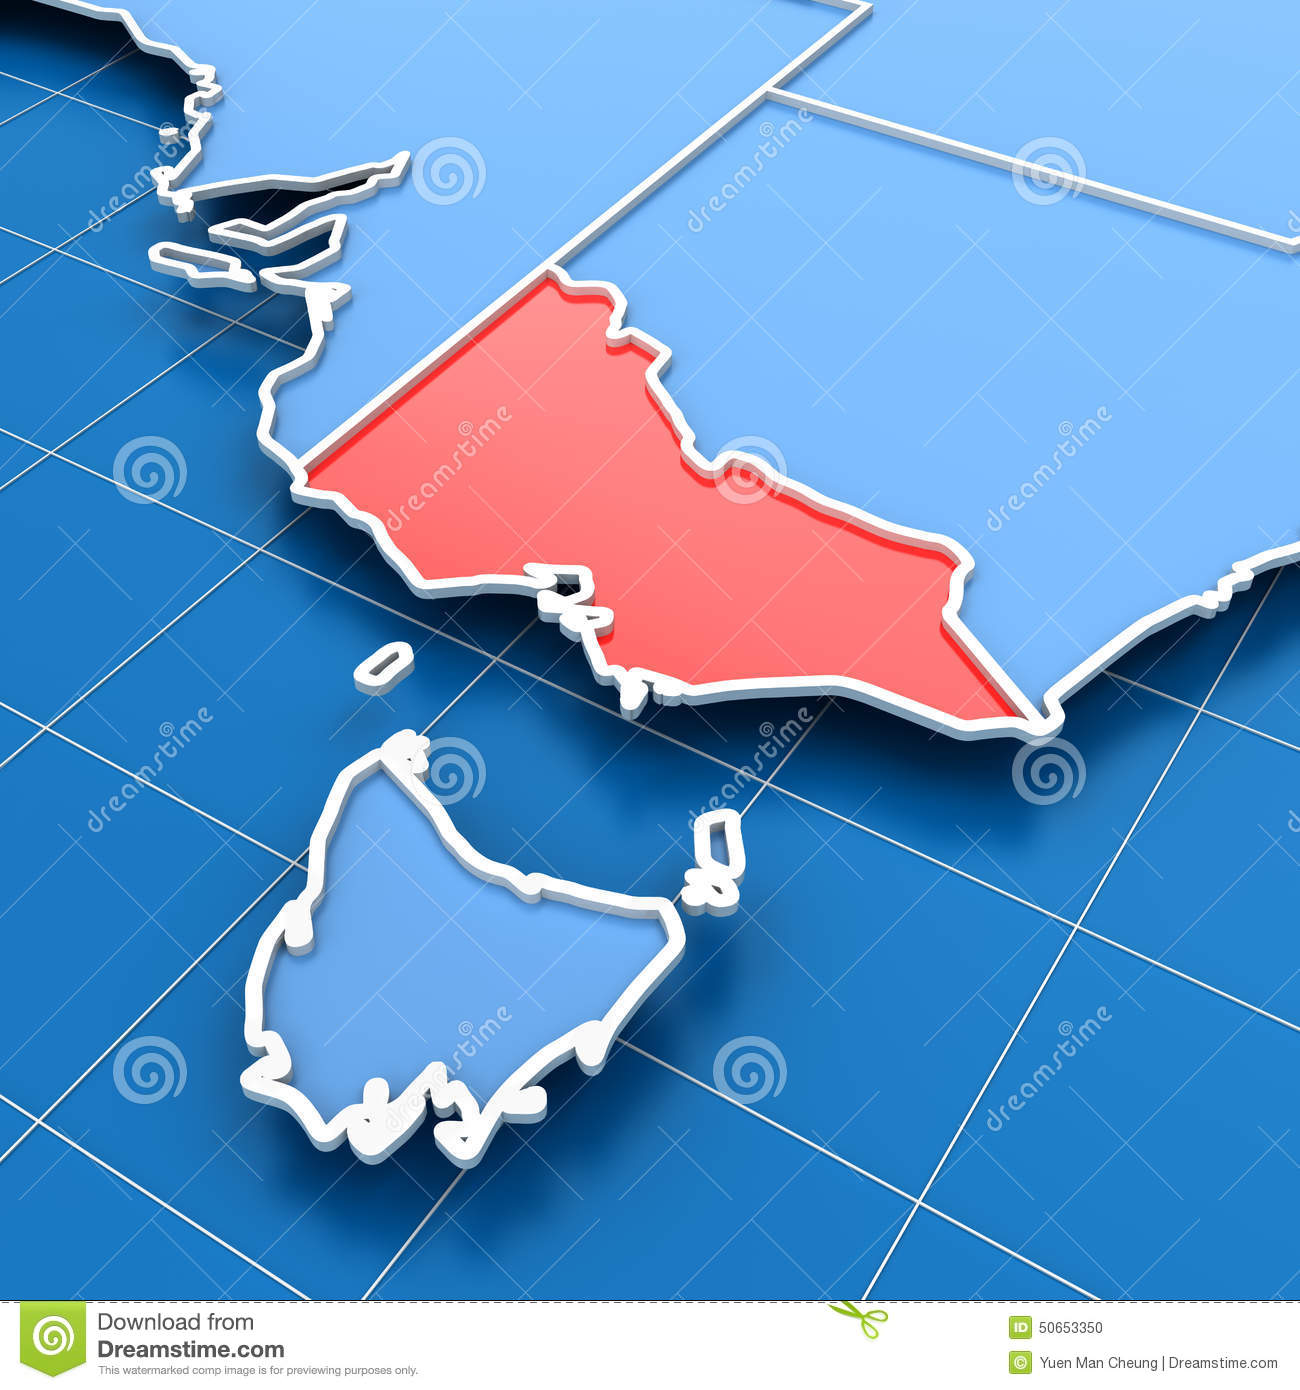 Victoria In Australia Map.Australia Map With Victoria State Highlighted Stock Illustration